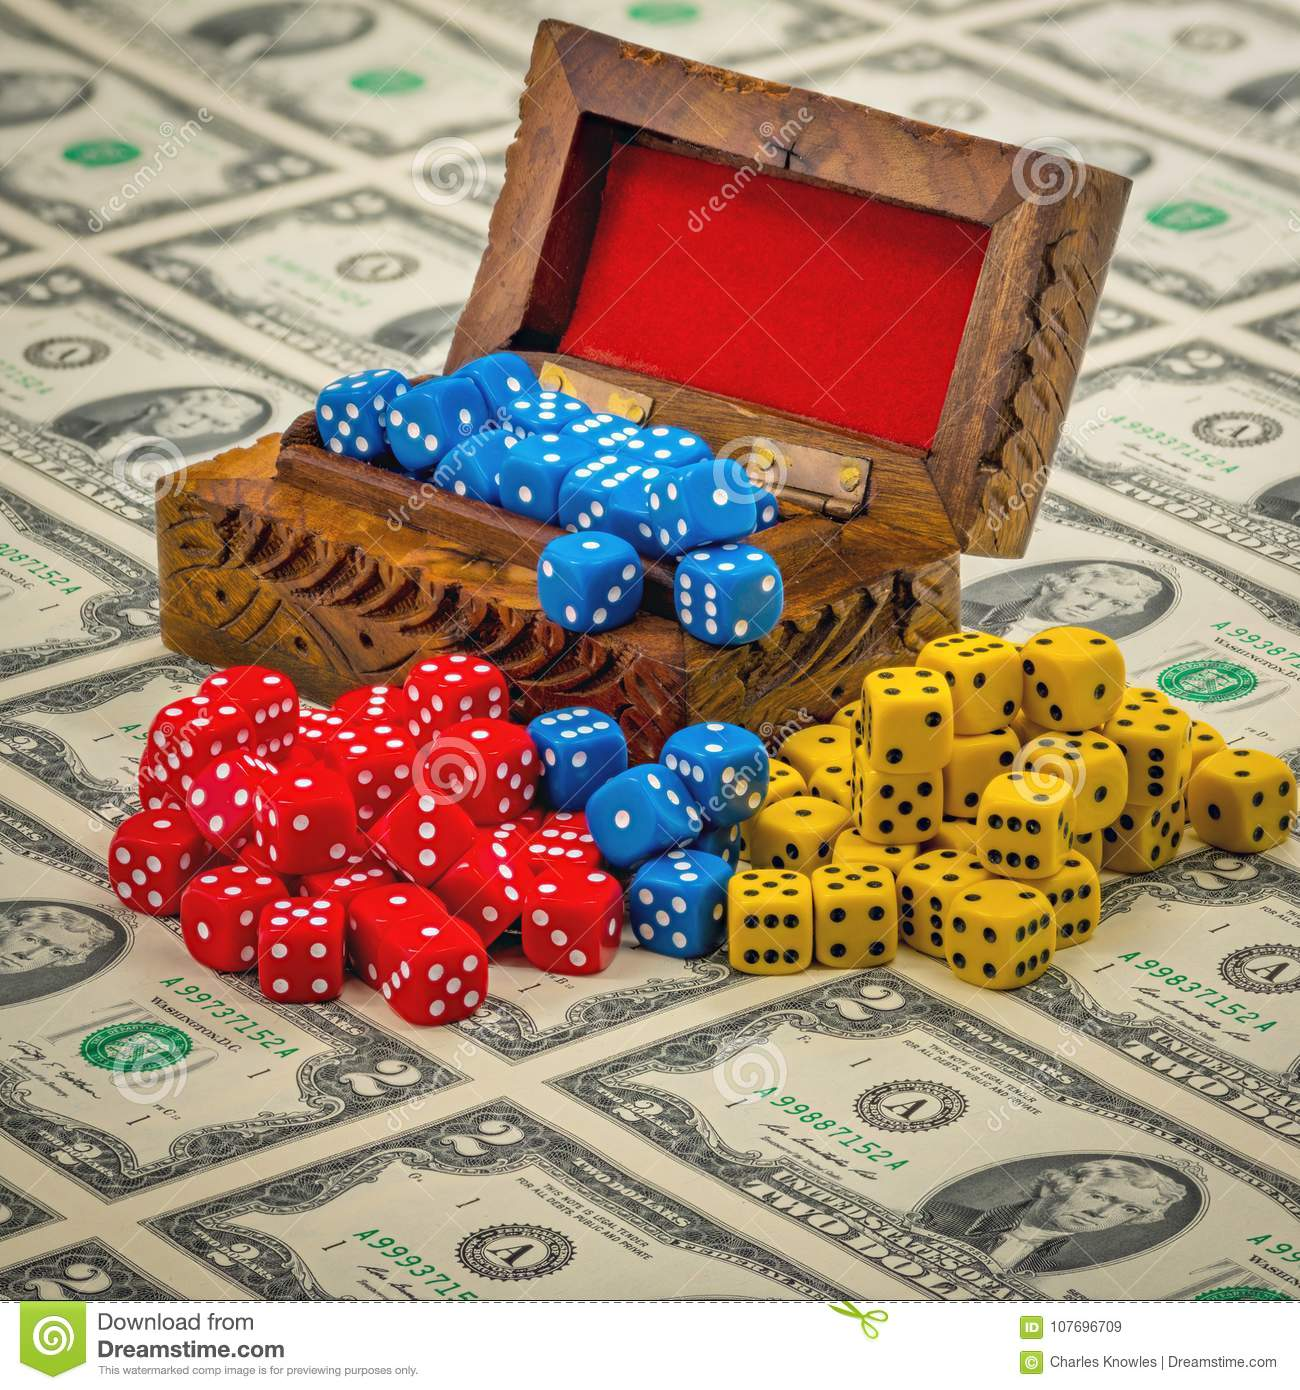 Old Wooden Box Filled With Game Dice On A Sheet Of Money